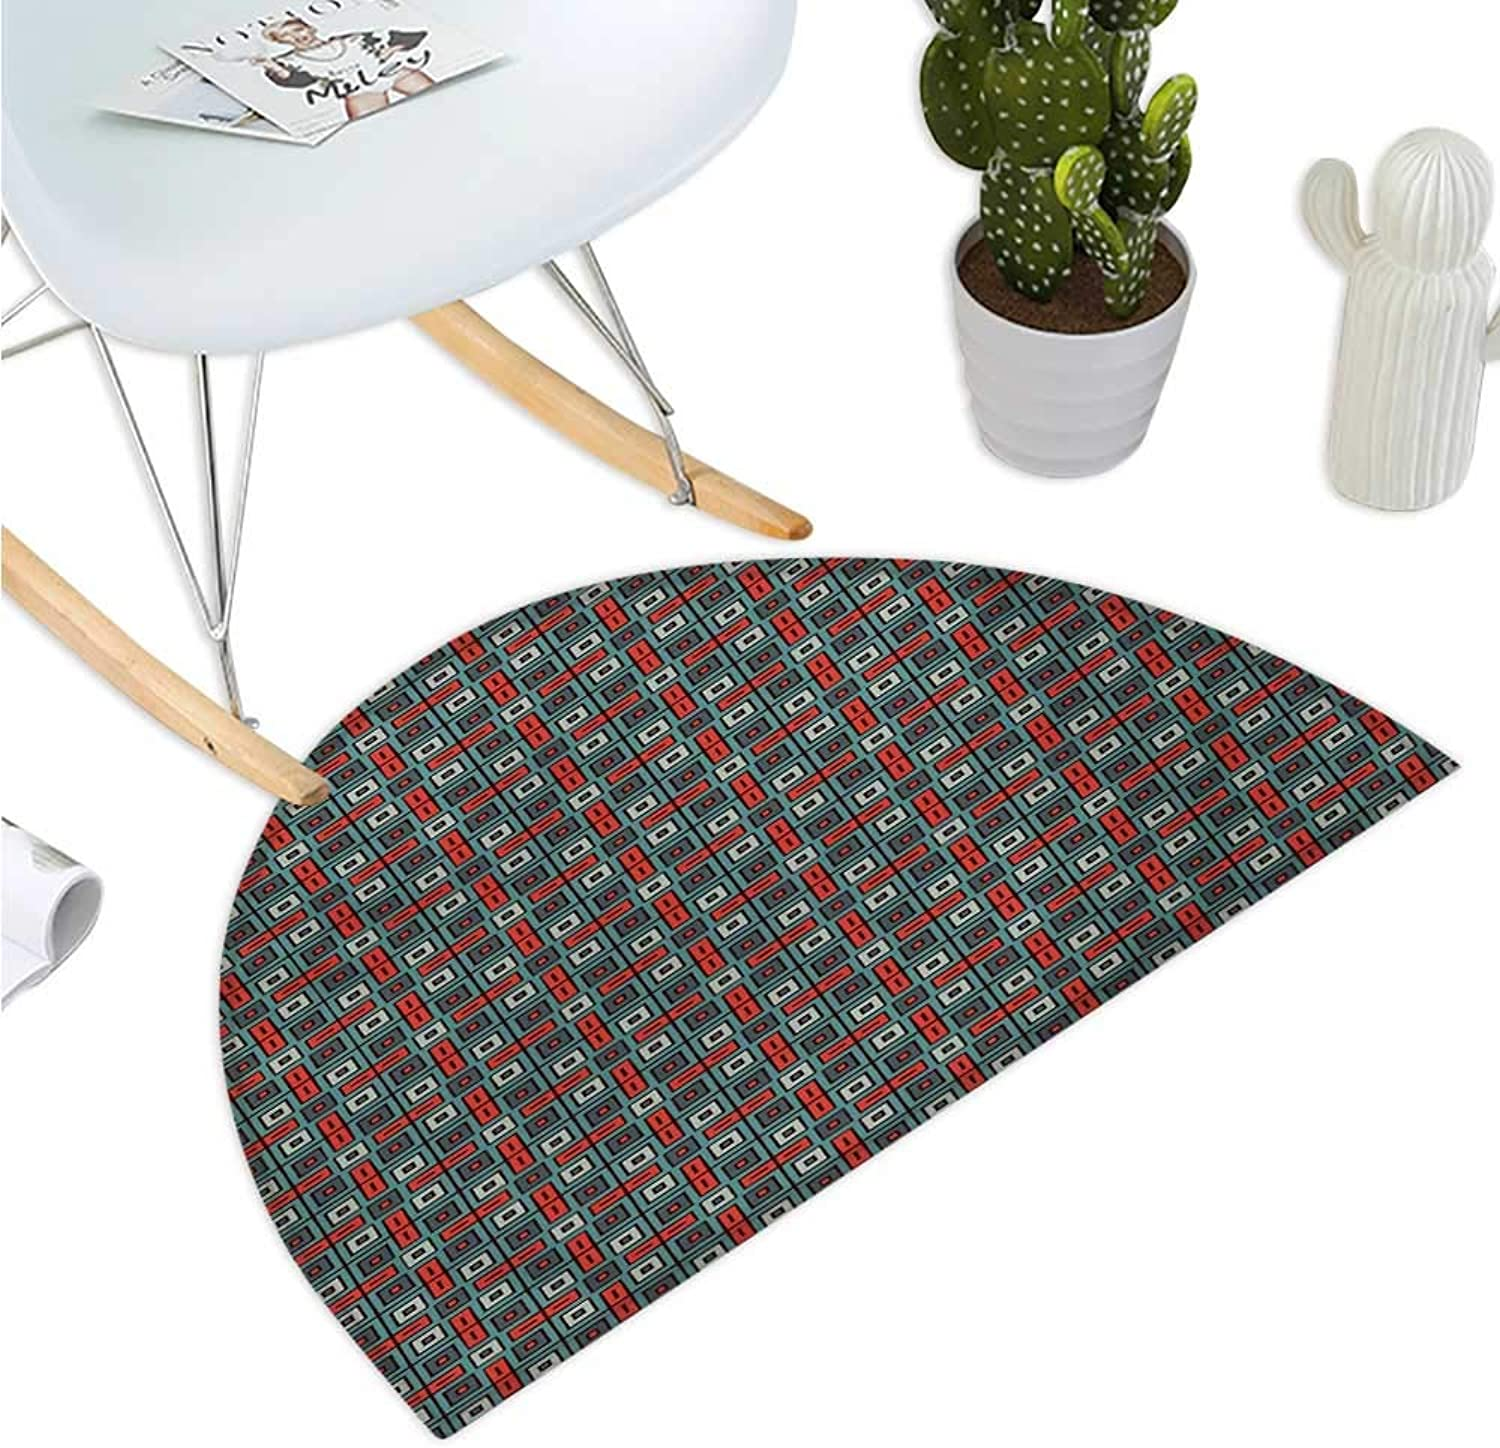 Geometric Semicircle Doormat Repeated Squares Ornamental Abstract Pattern in Ethnic Style Retro Mosaic Halfmoon doormats H 43.3  xD 64.9  Vermilion Teal